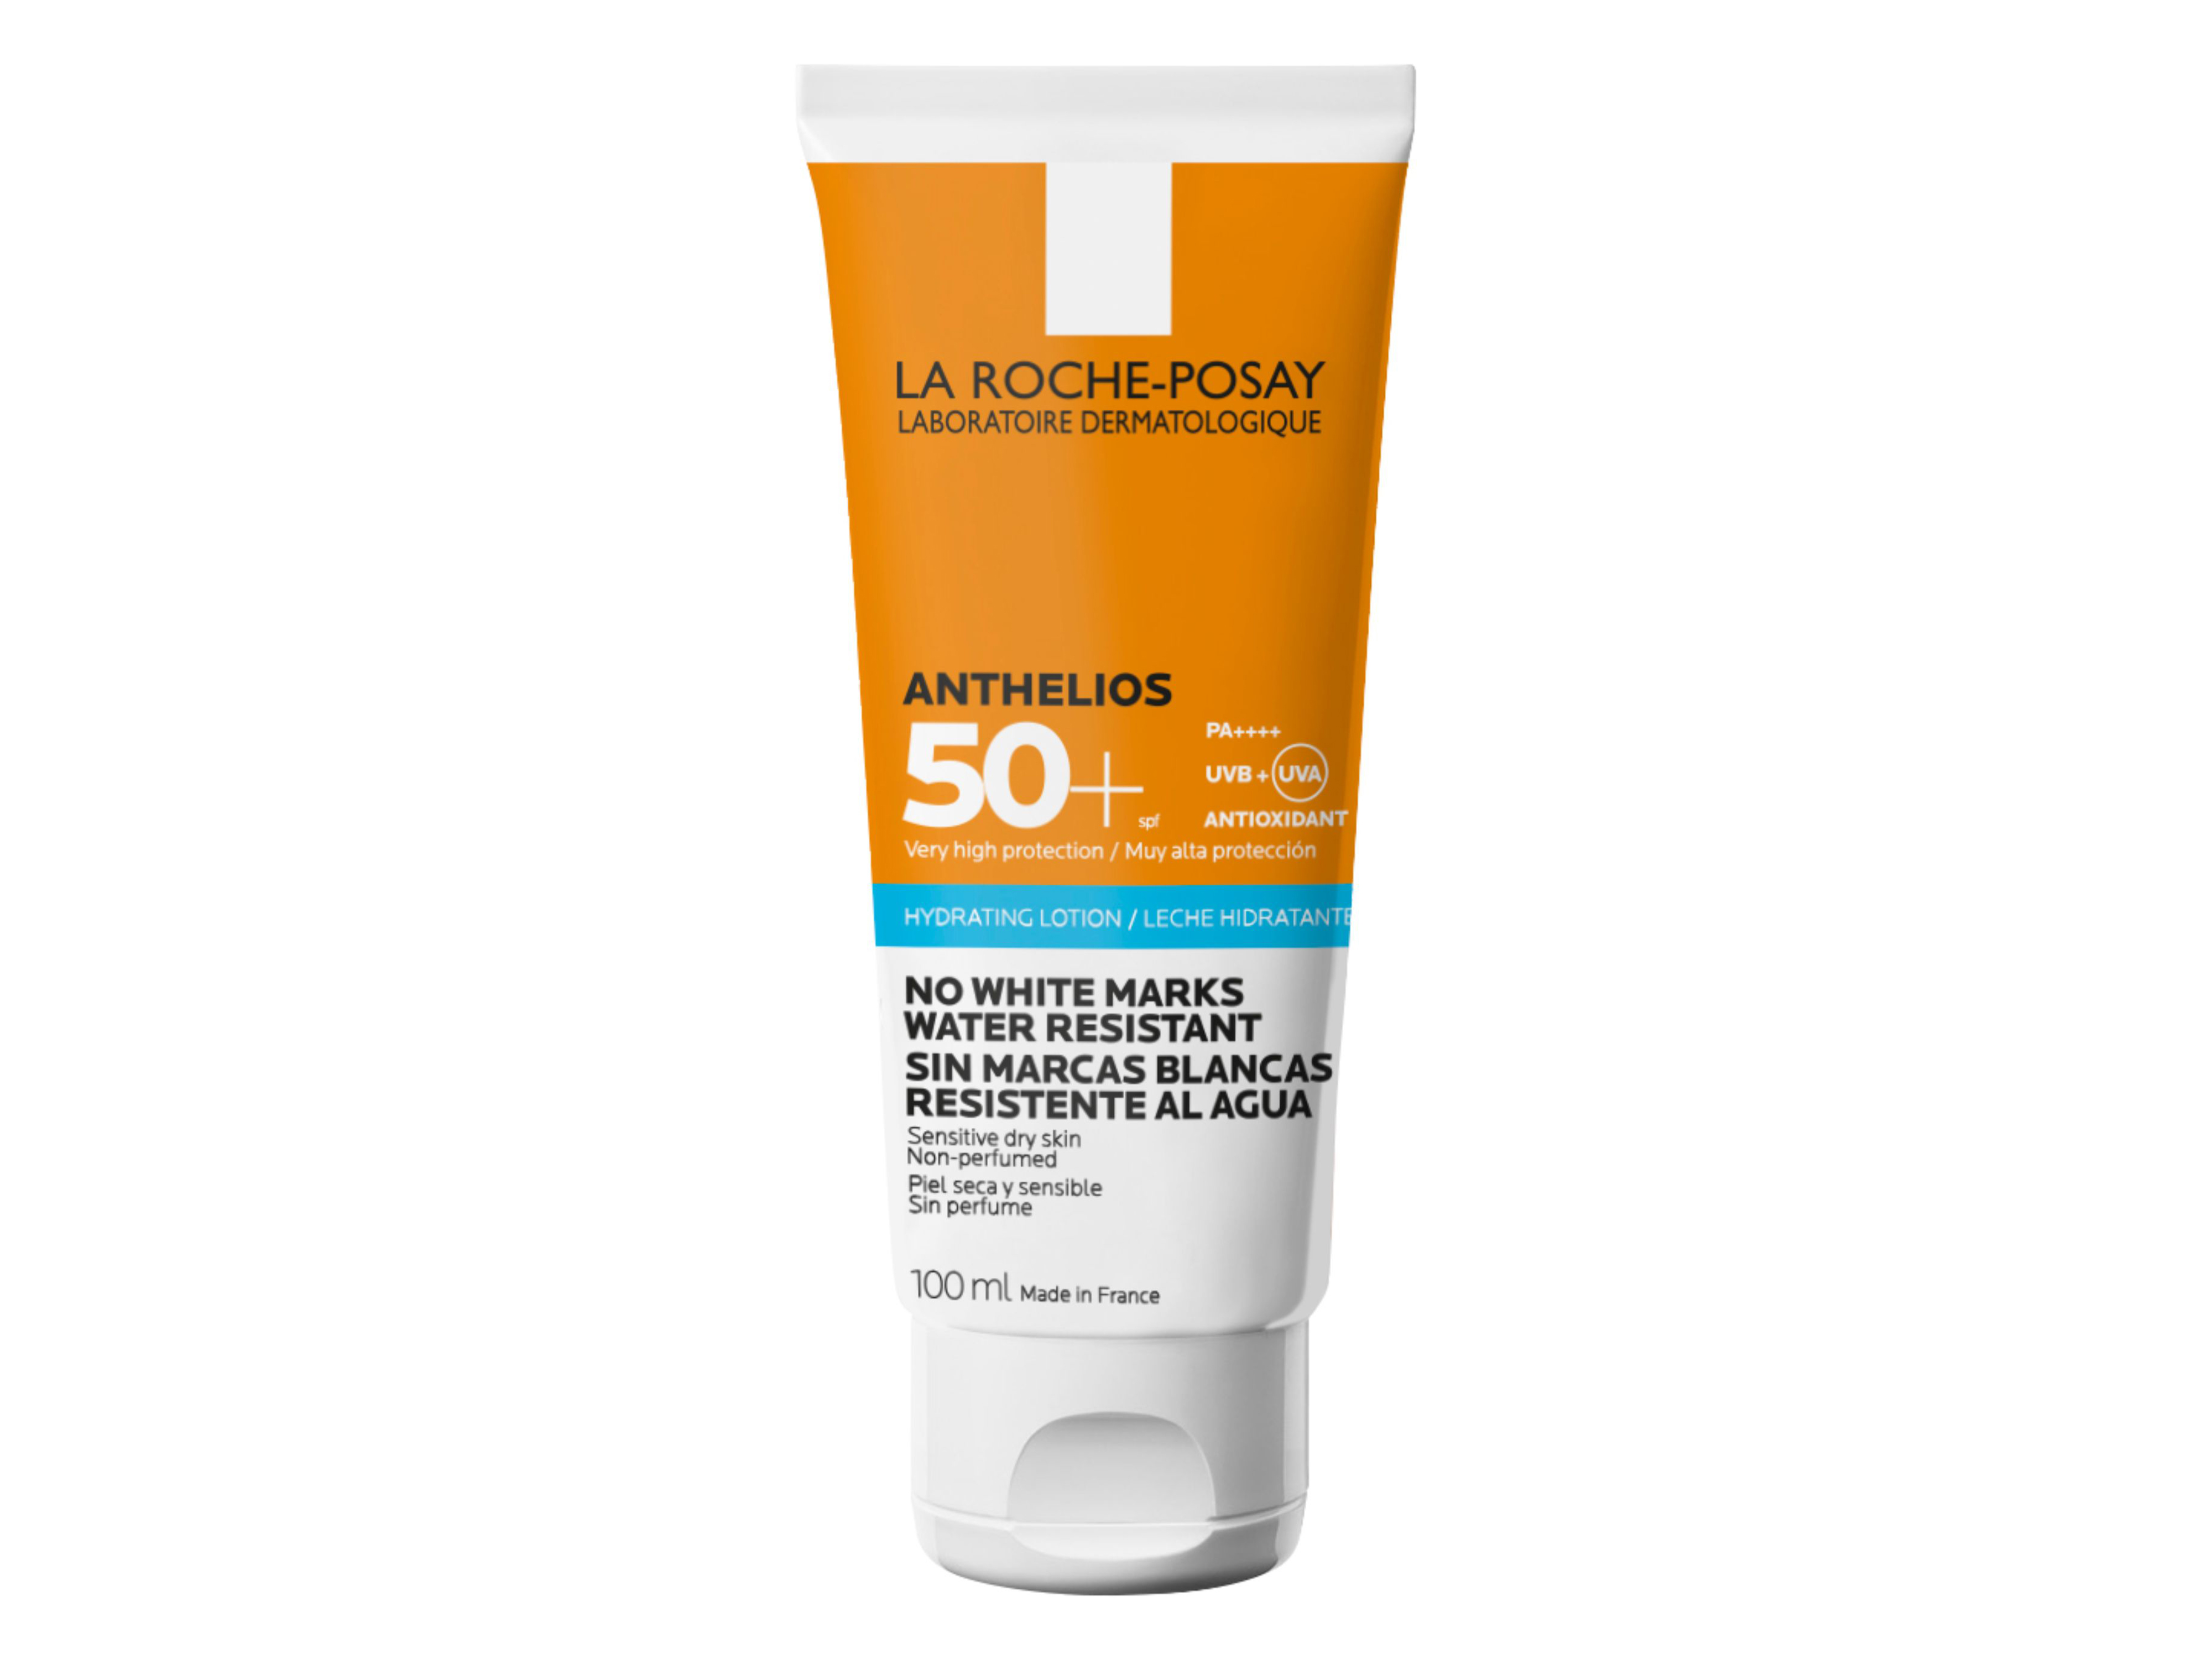 La Roche-Posay Anthelios Hydrating Lotion, SPF 50+, 100 ml